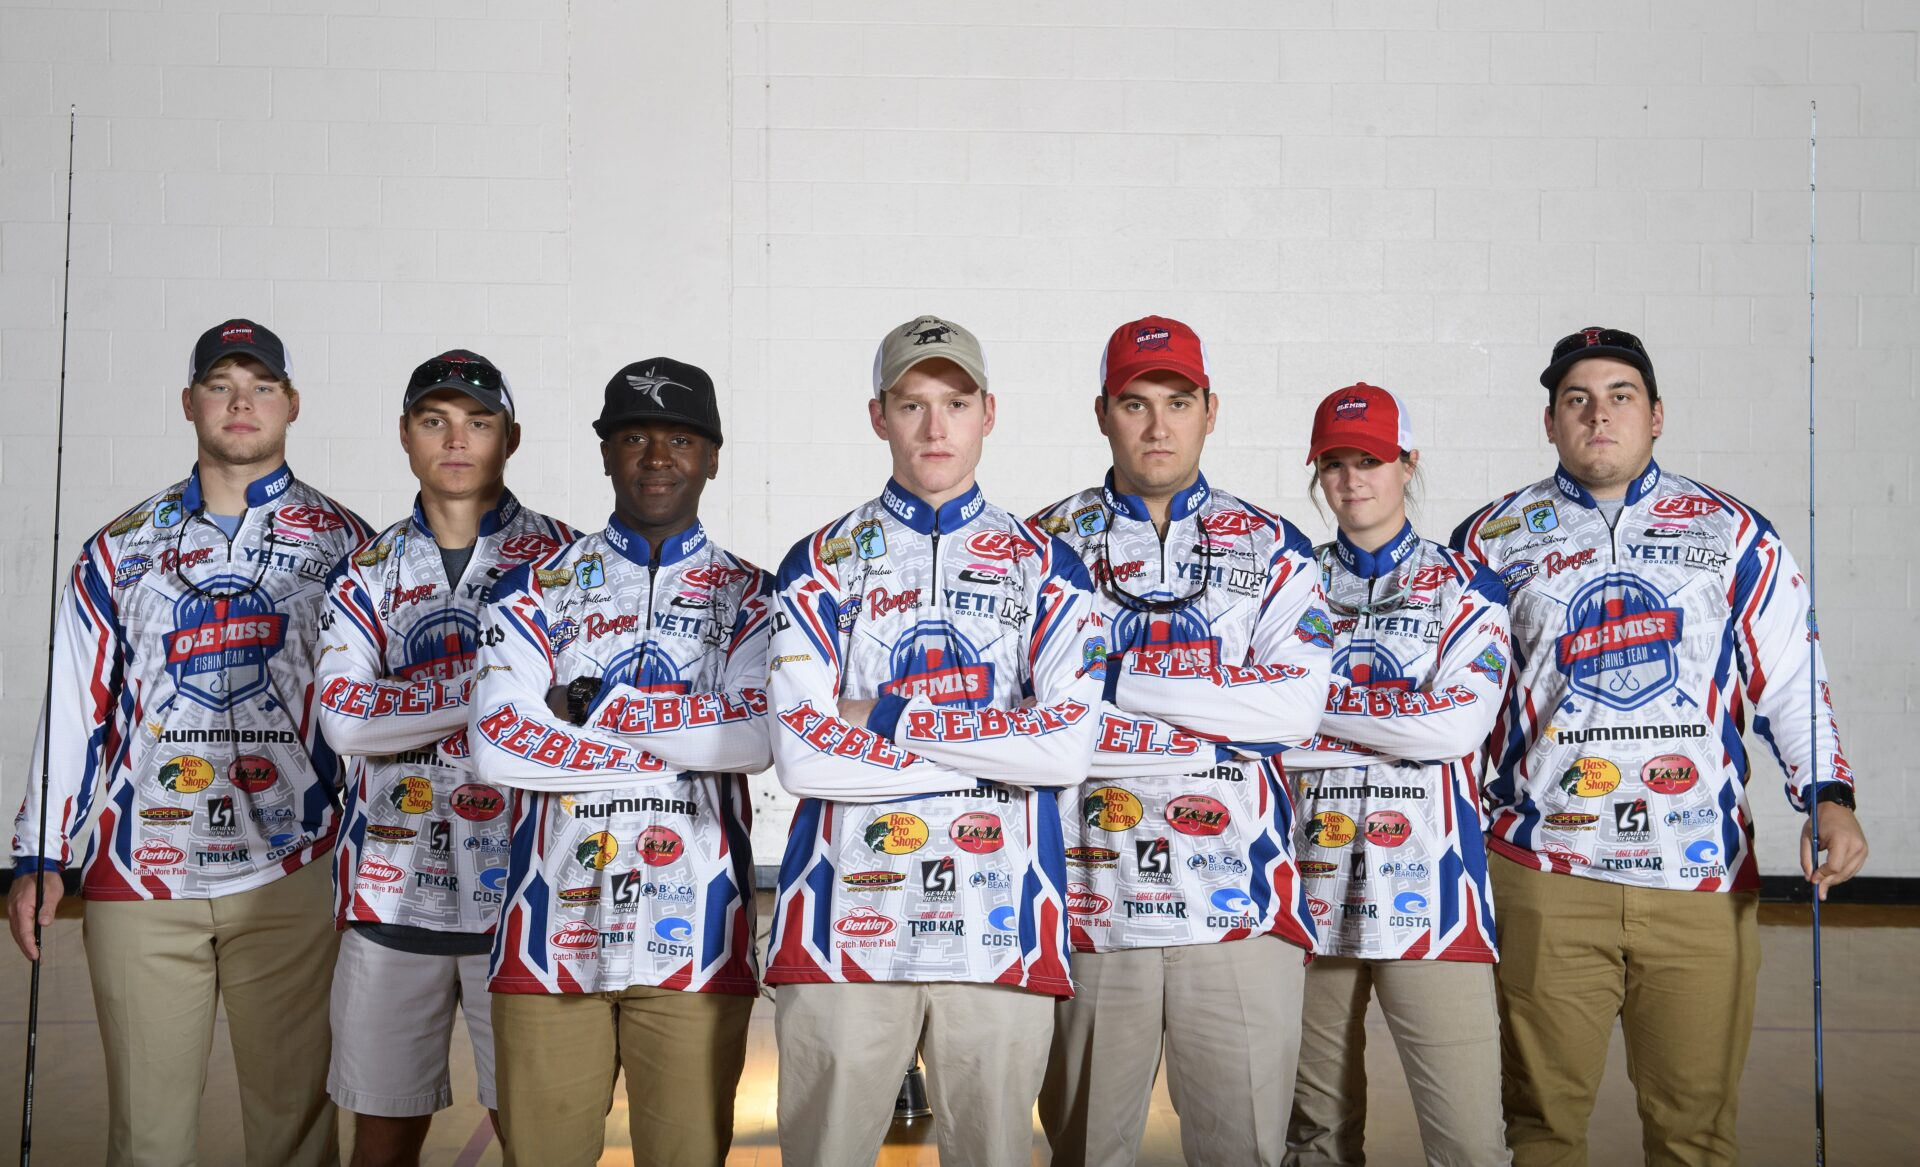 Ole miss fishing club grows to 30 members since 2010 for Fishing team names